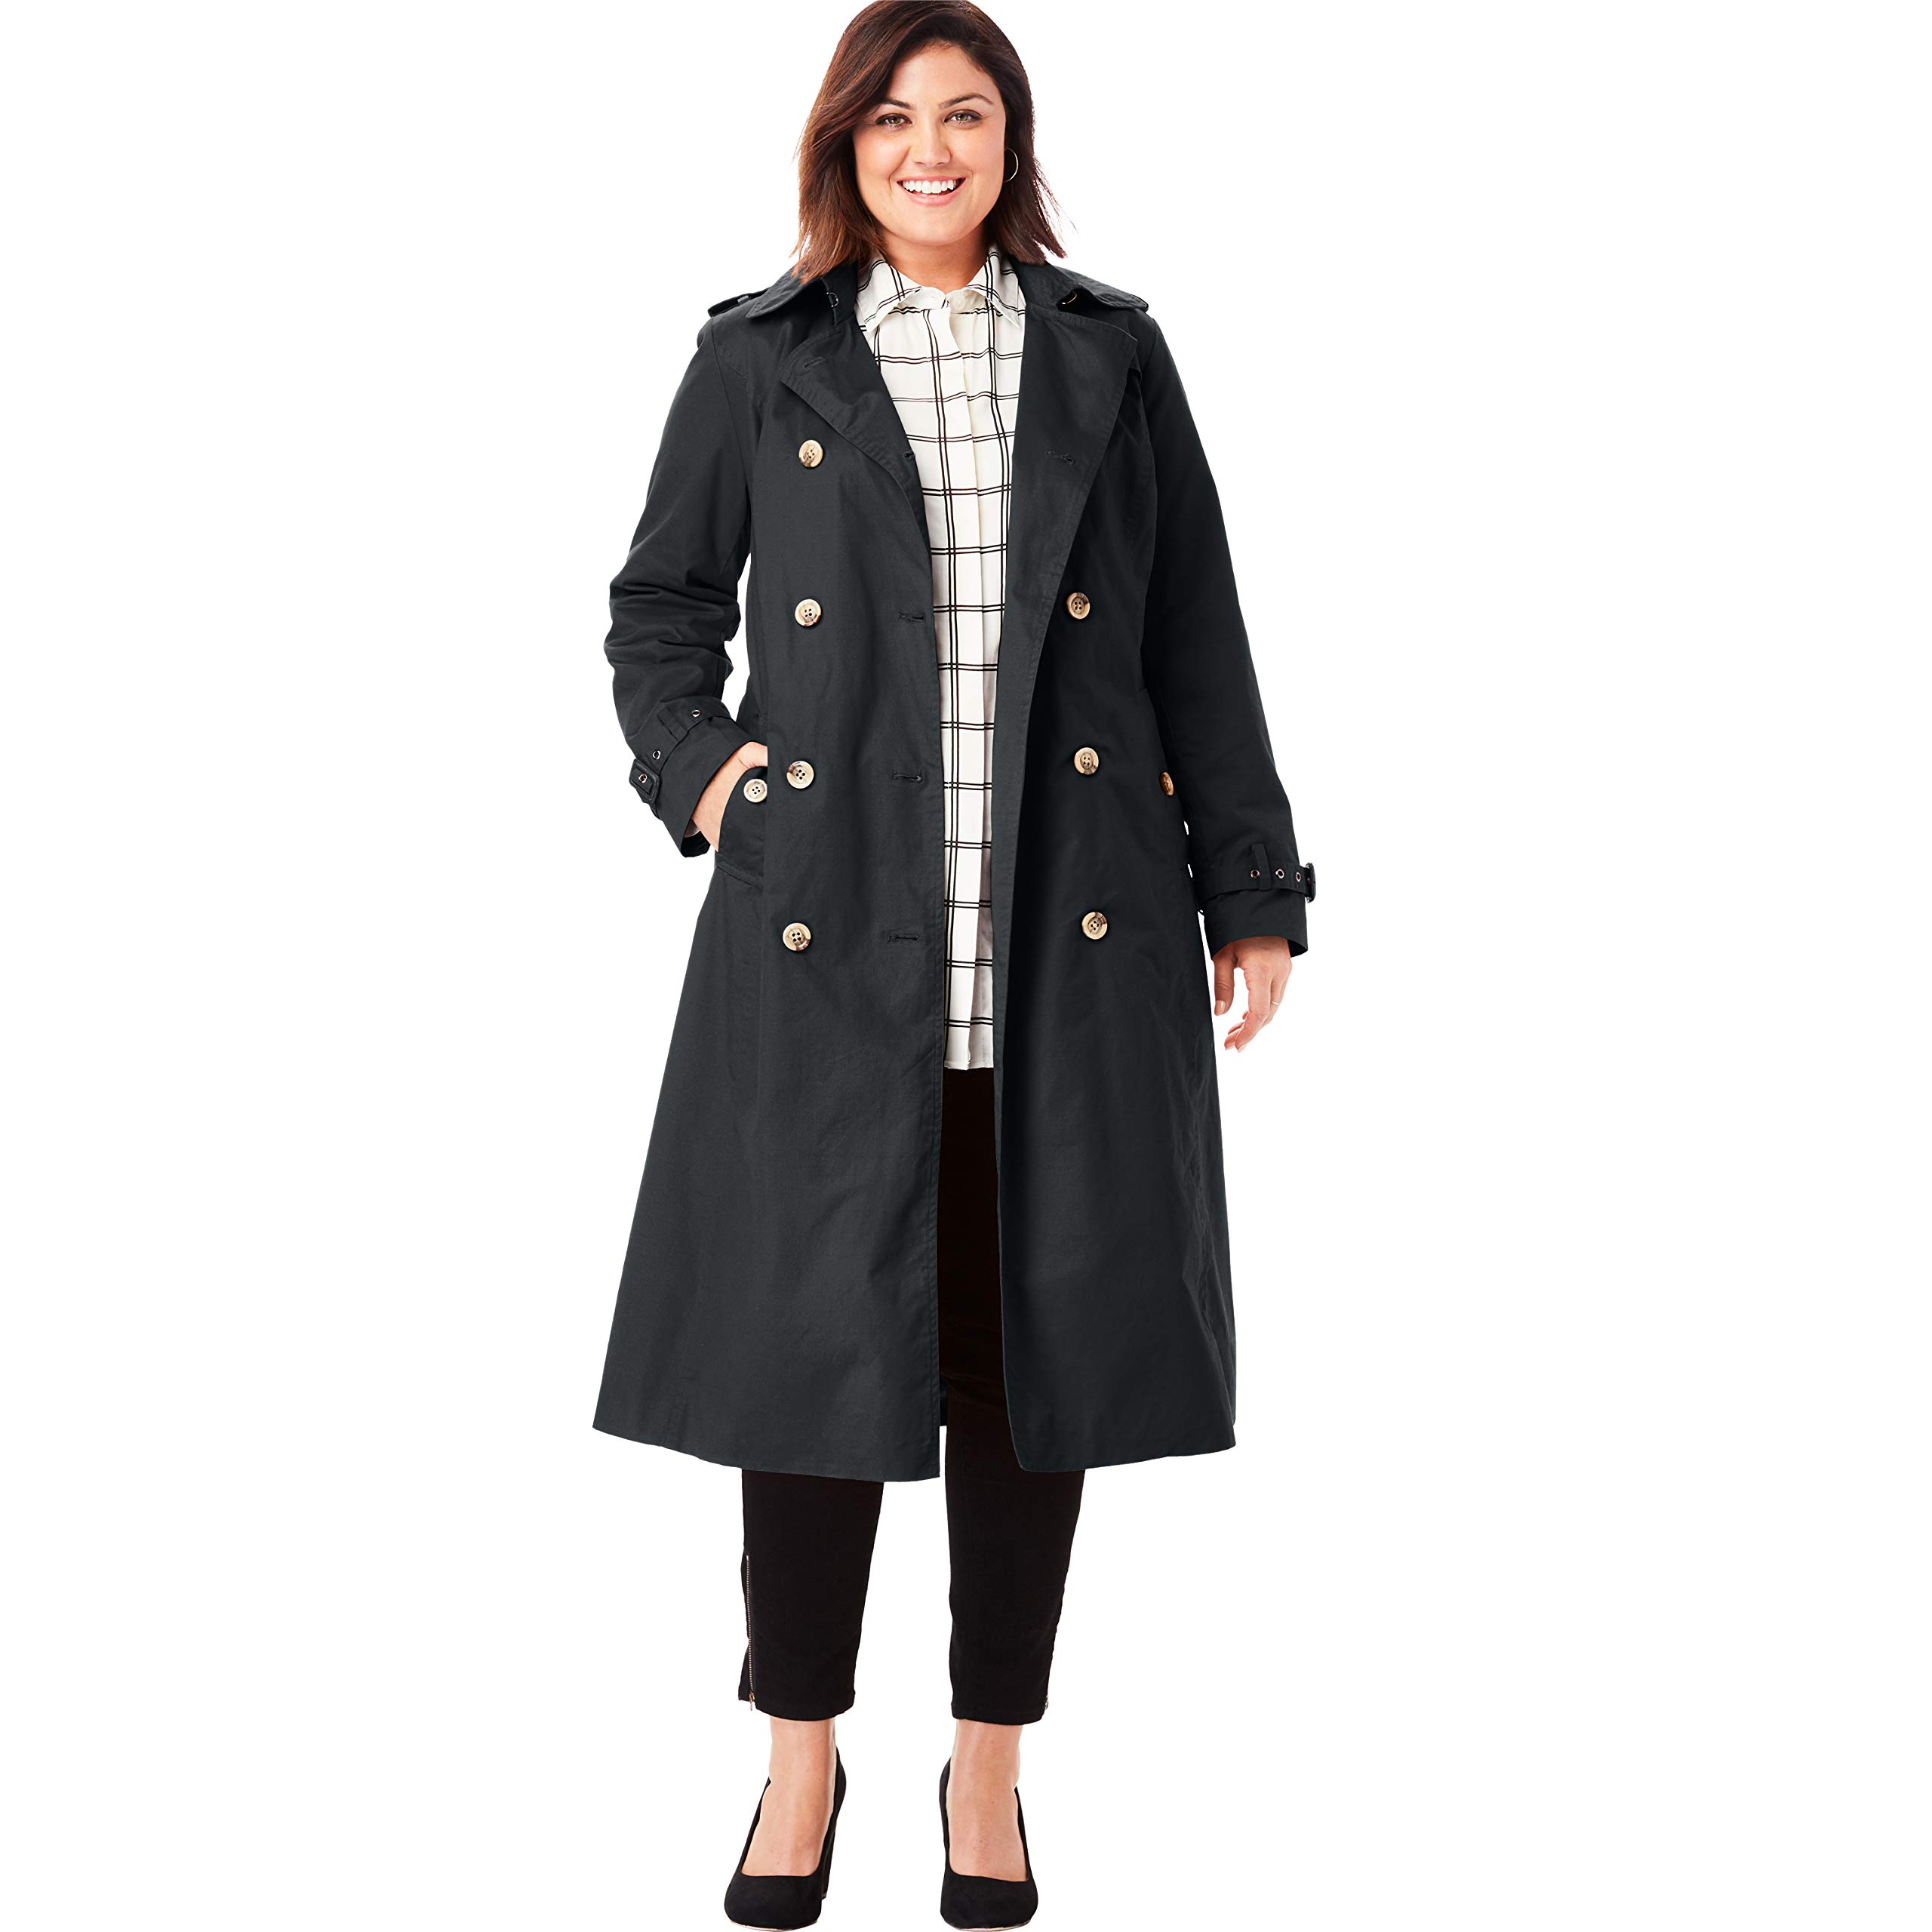 Jessica London Women's Plus Size Long Trench Coat